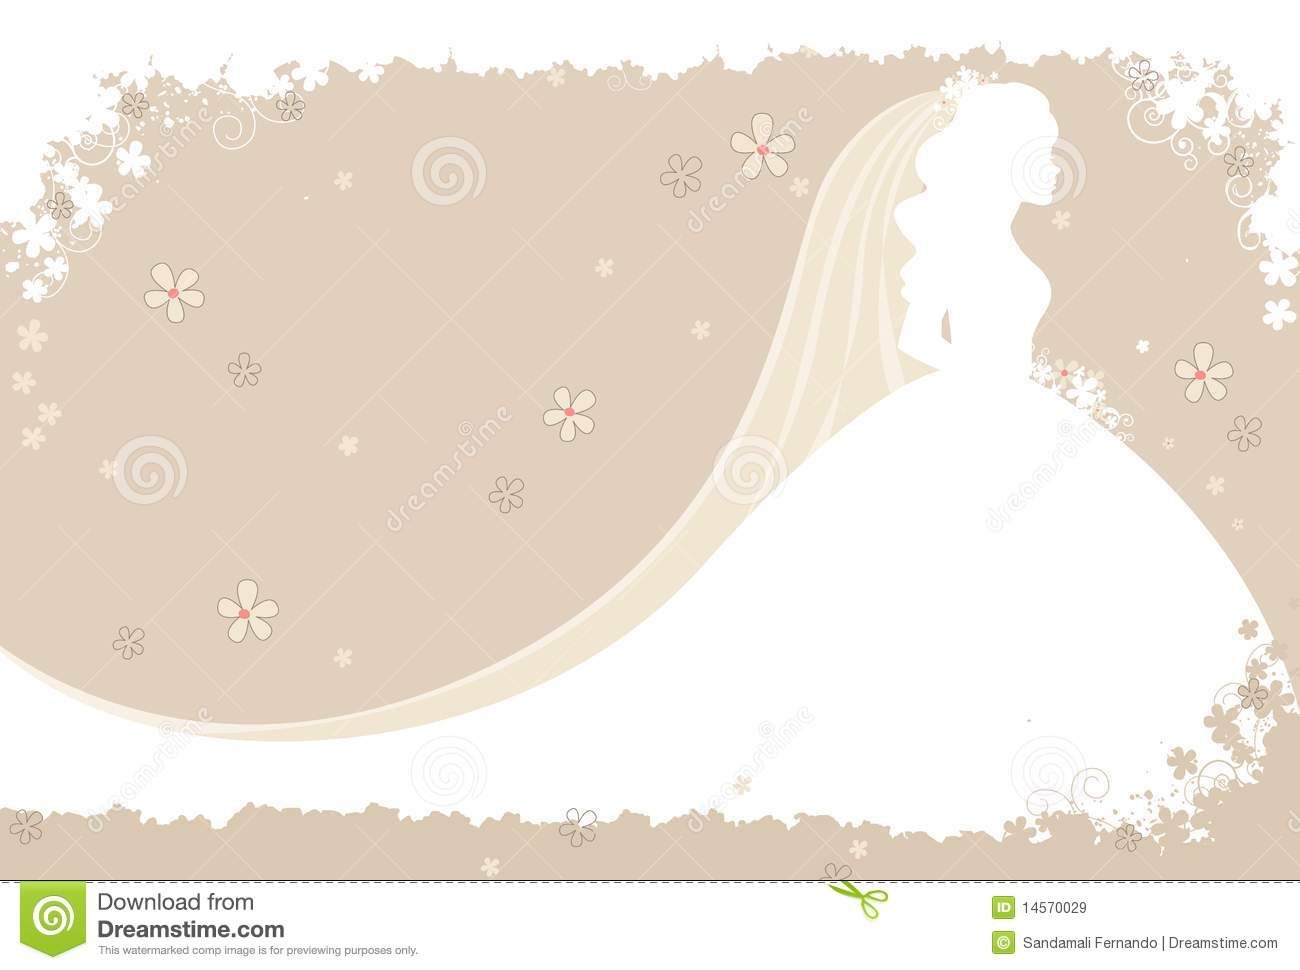 facebook invite examples for bridal shower - Google Search   BB Pins ...